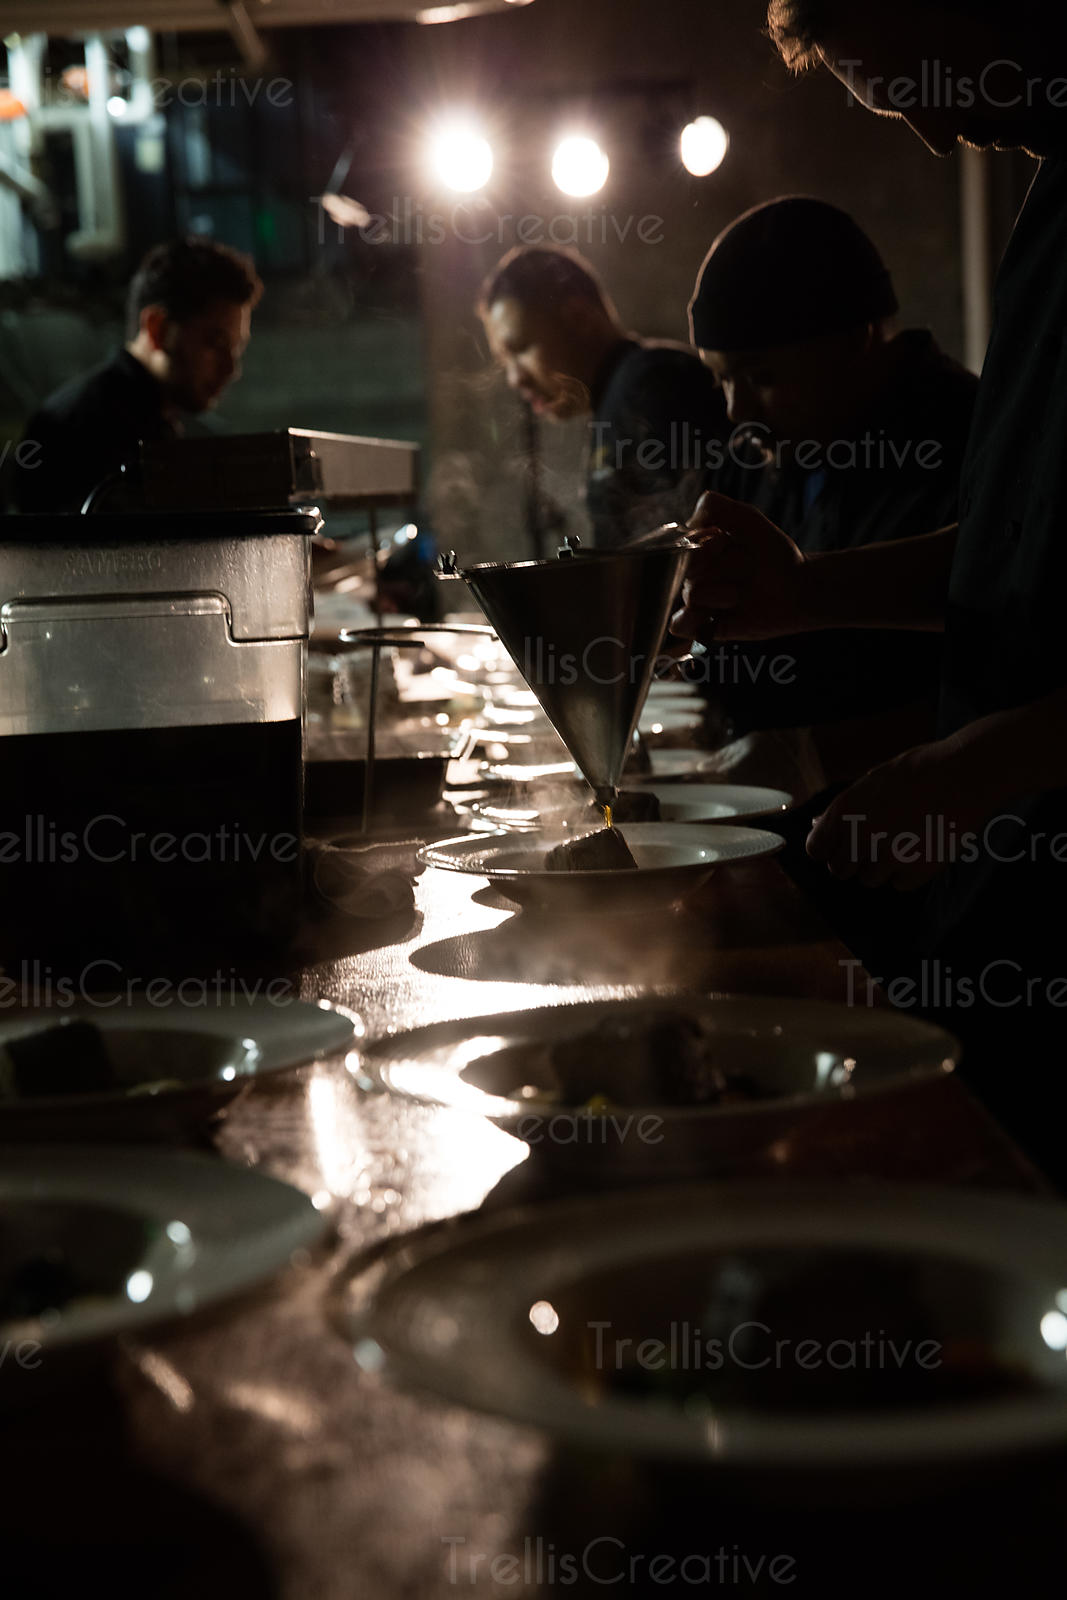 Chef preparing food at an event